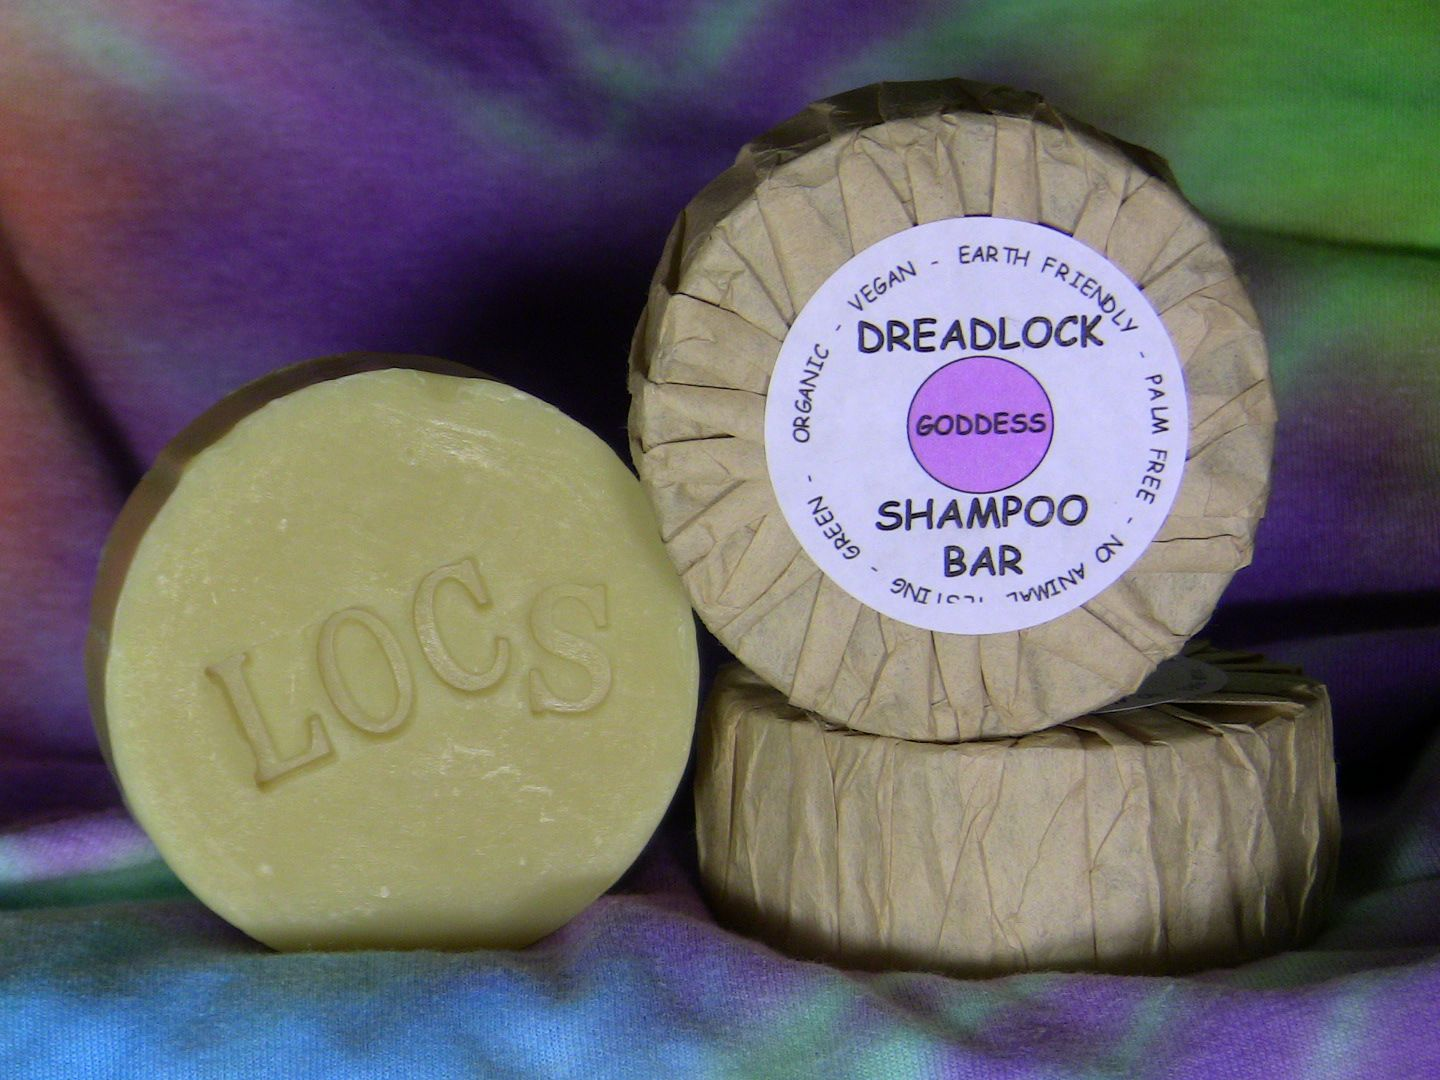 Goddess Dreadlock Shampoo Bar